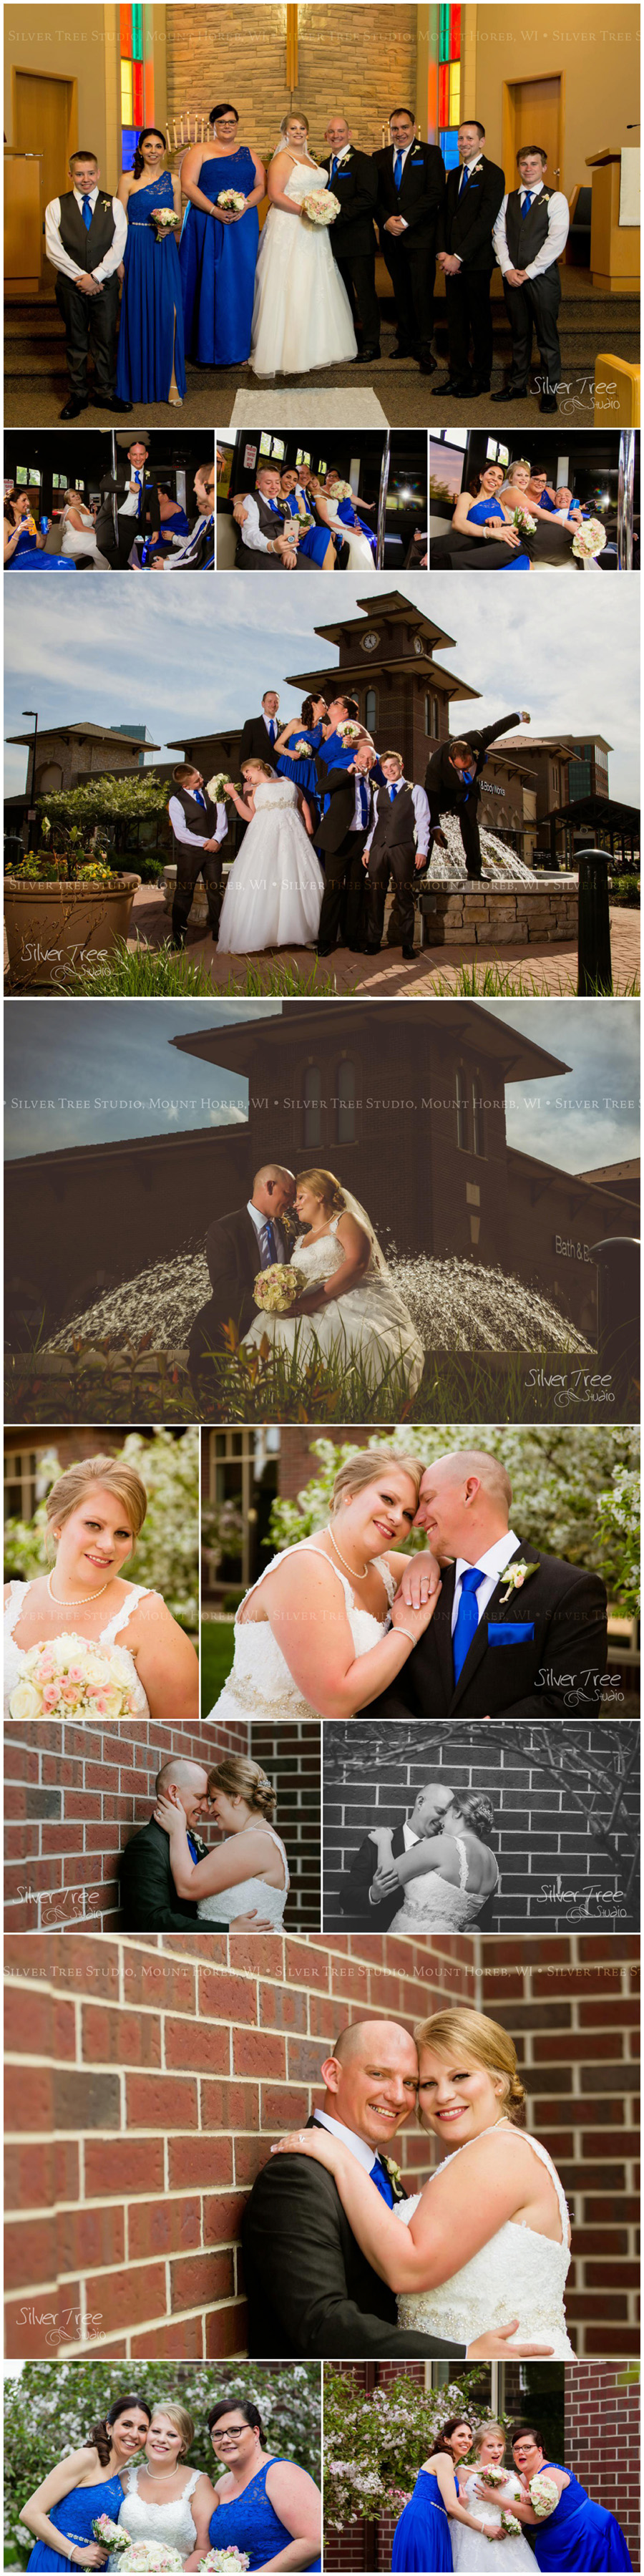 Silver Tree Studio - Professional Photography based in South Central Wisconsin, Wedding, Engagement, Portrait